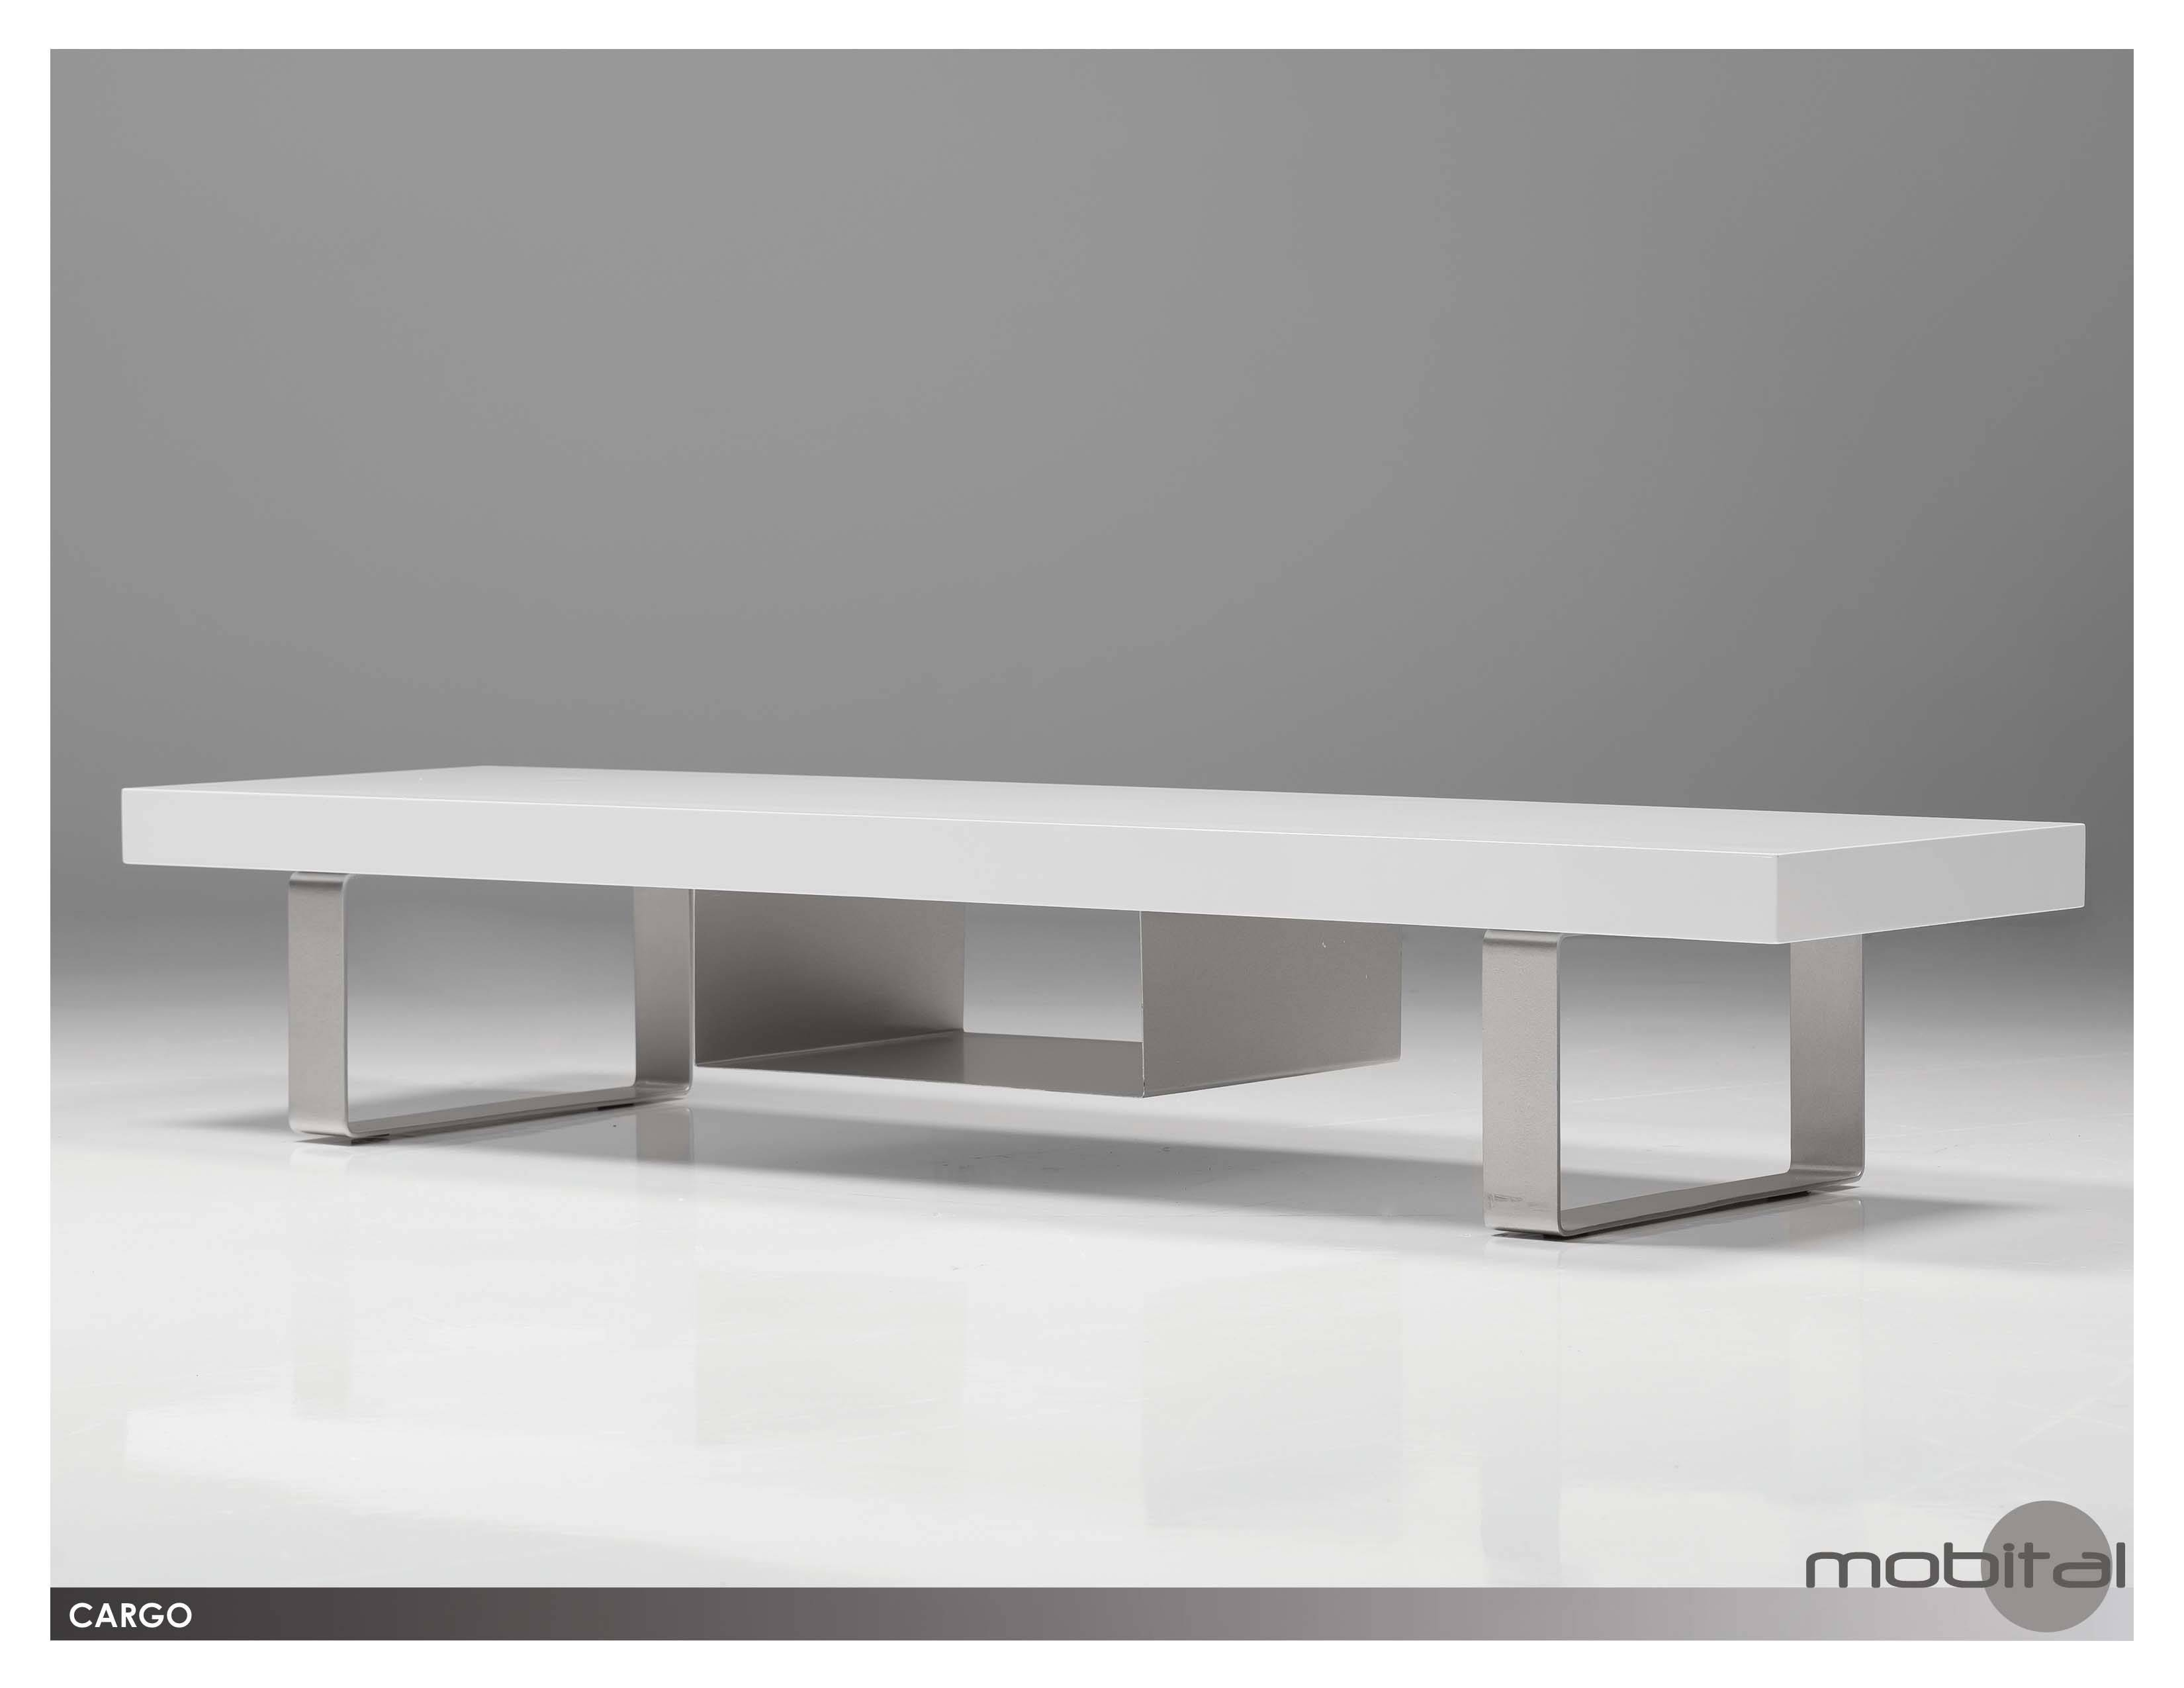 Mobital Cargo Modern White Tv Stand Modern Furnishings within Modern White Tv Stands (Image 9 of 15)